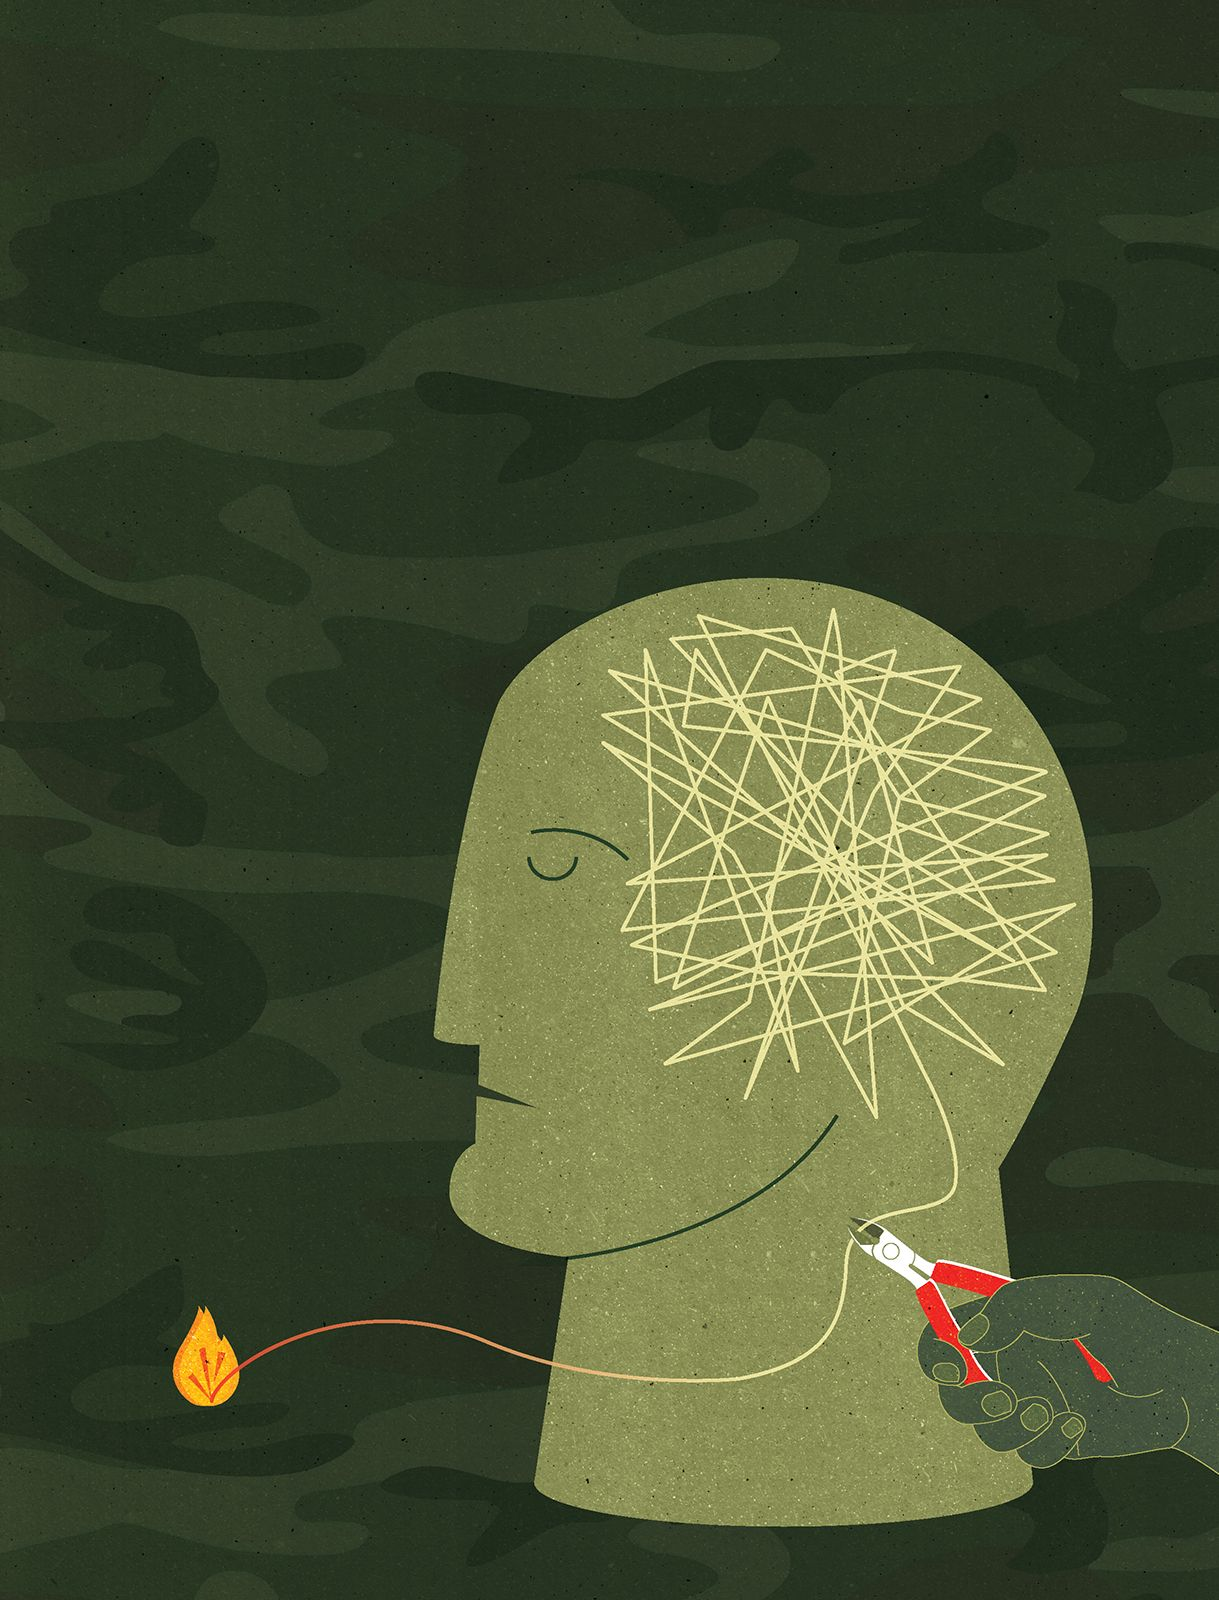 kotryna zukauskaite military officers association of america kotryna zukauskaite military officers association of america defusing post traumatic syndrome cover feature illustrations